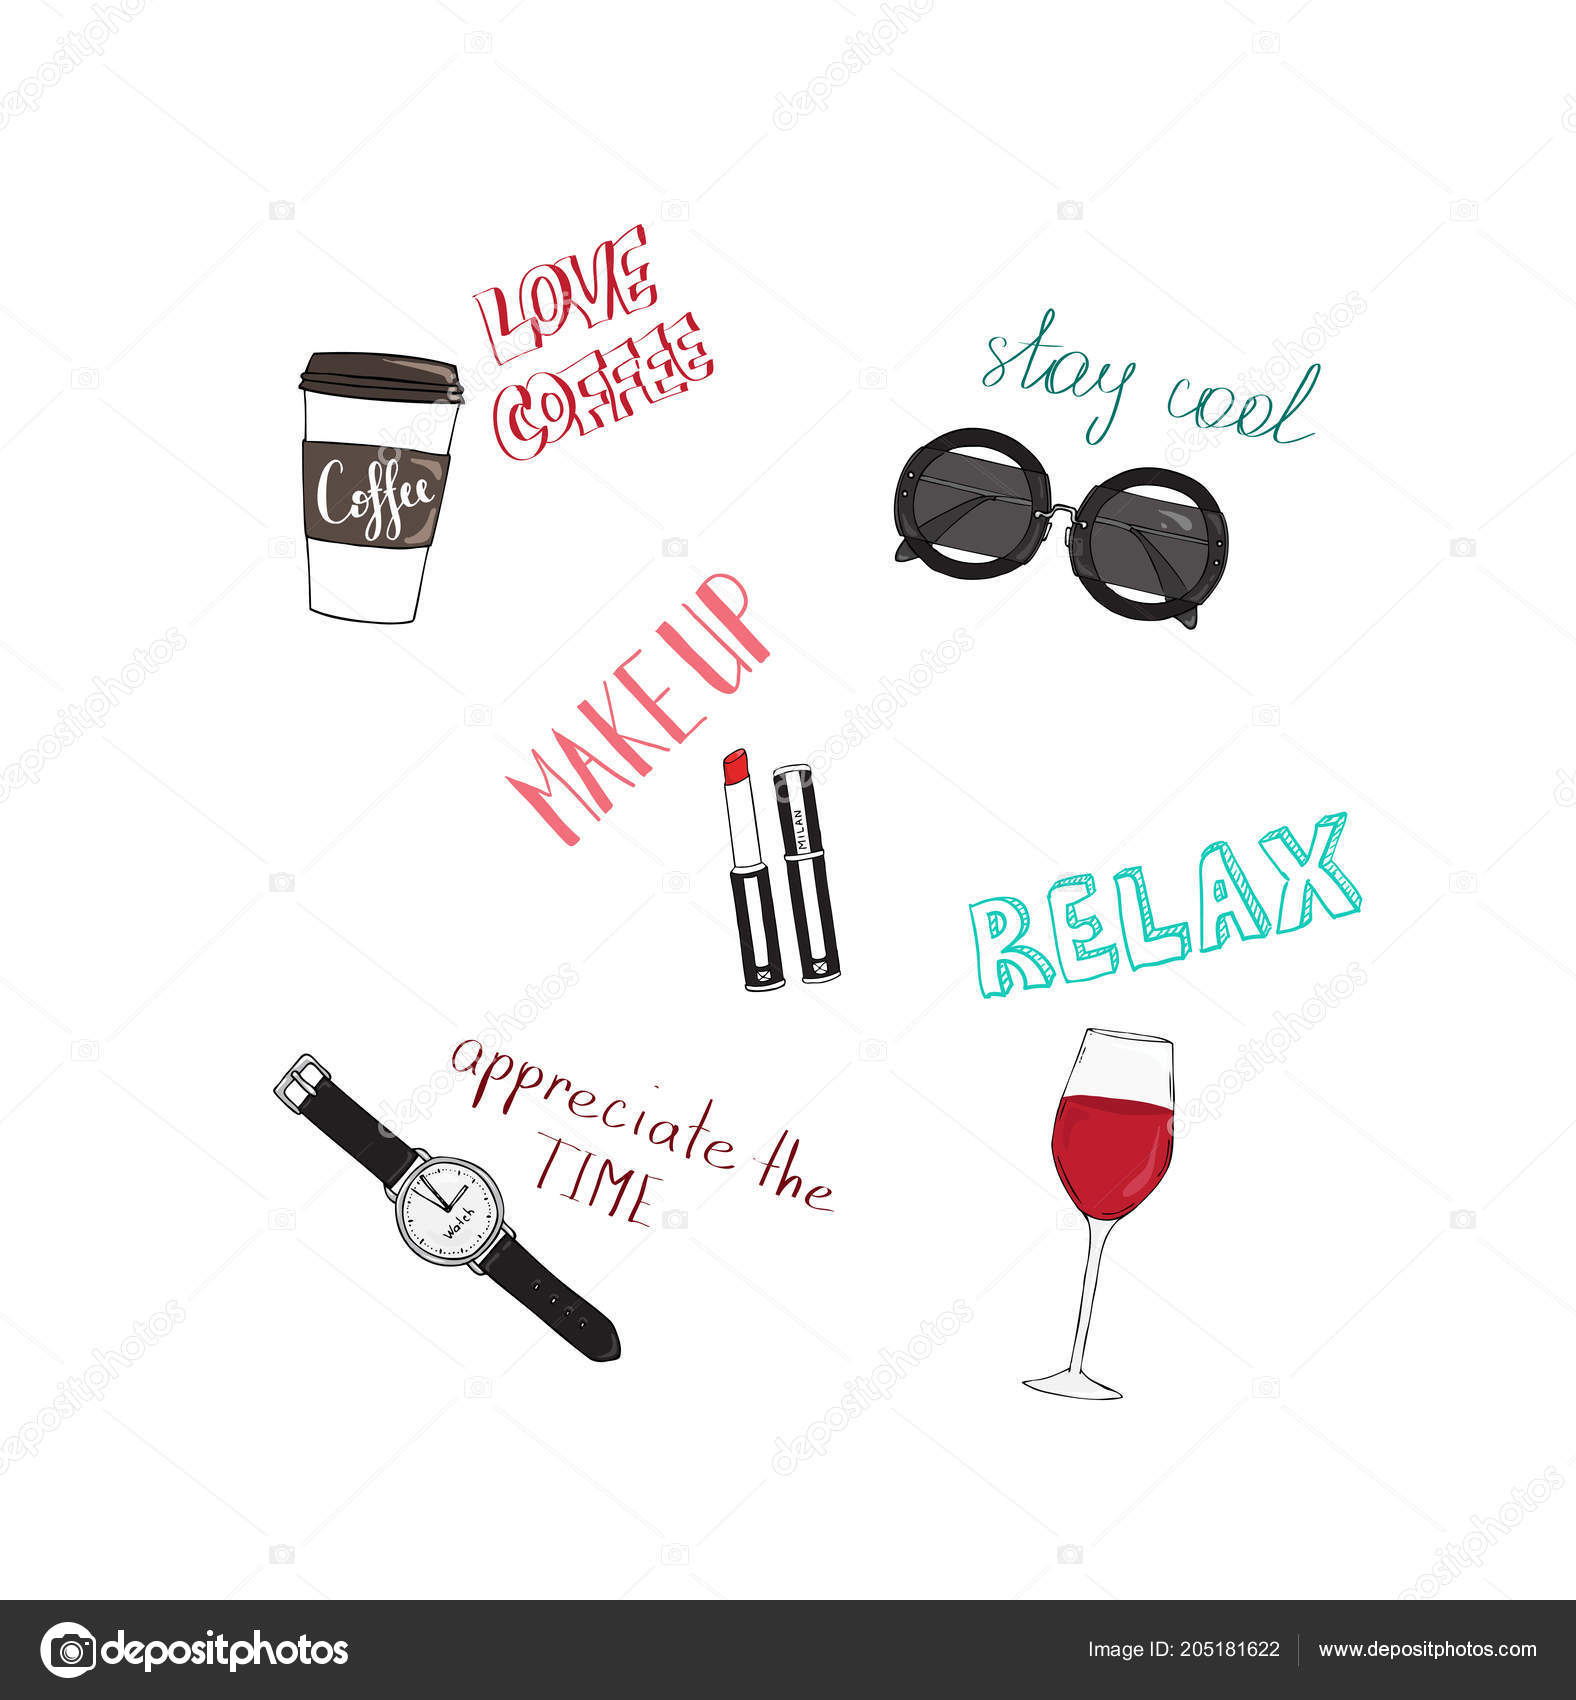 Vector design for women tshirt with slogans and icons. Motivational quotes Love coffee, Stay cool, Value time, Relax, Makeup. Hand drawn illustration.